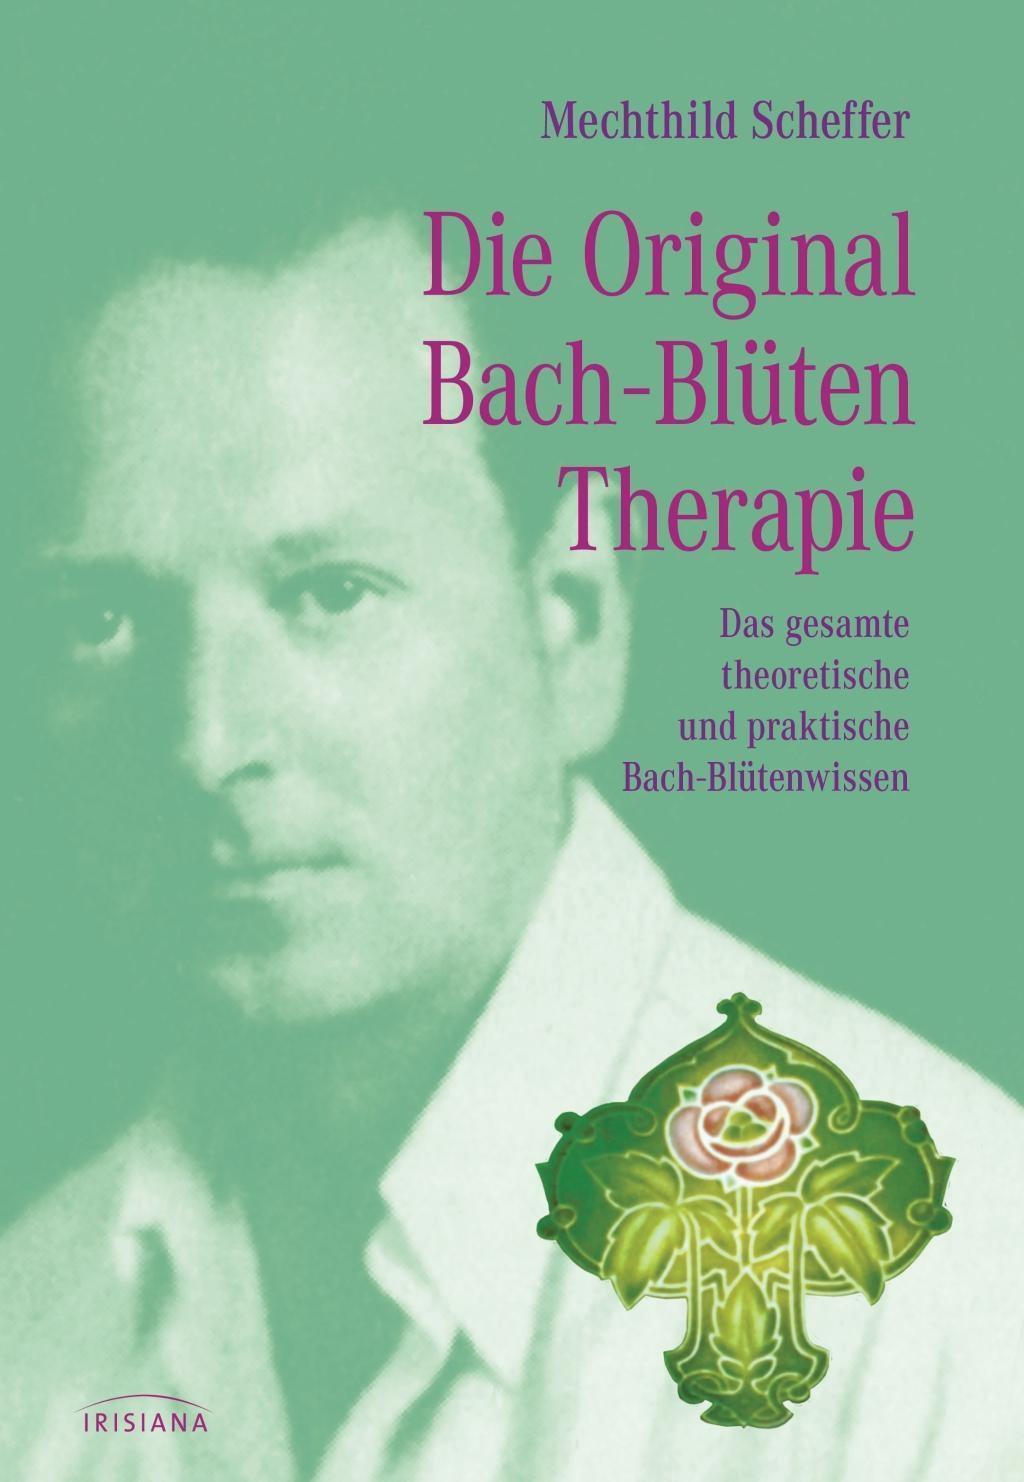 Die Original Bach-Blütentherapie